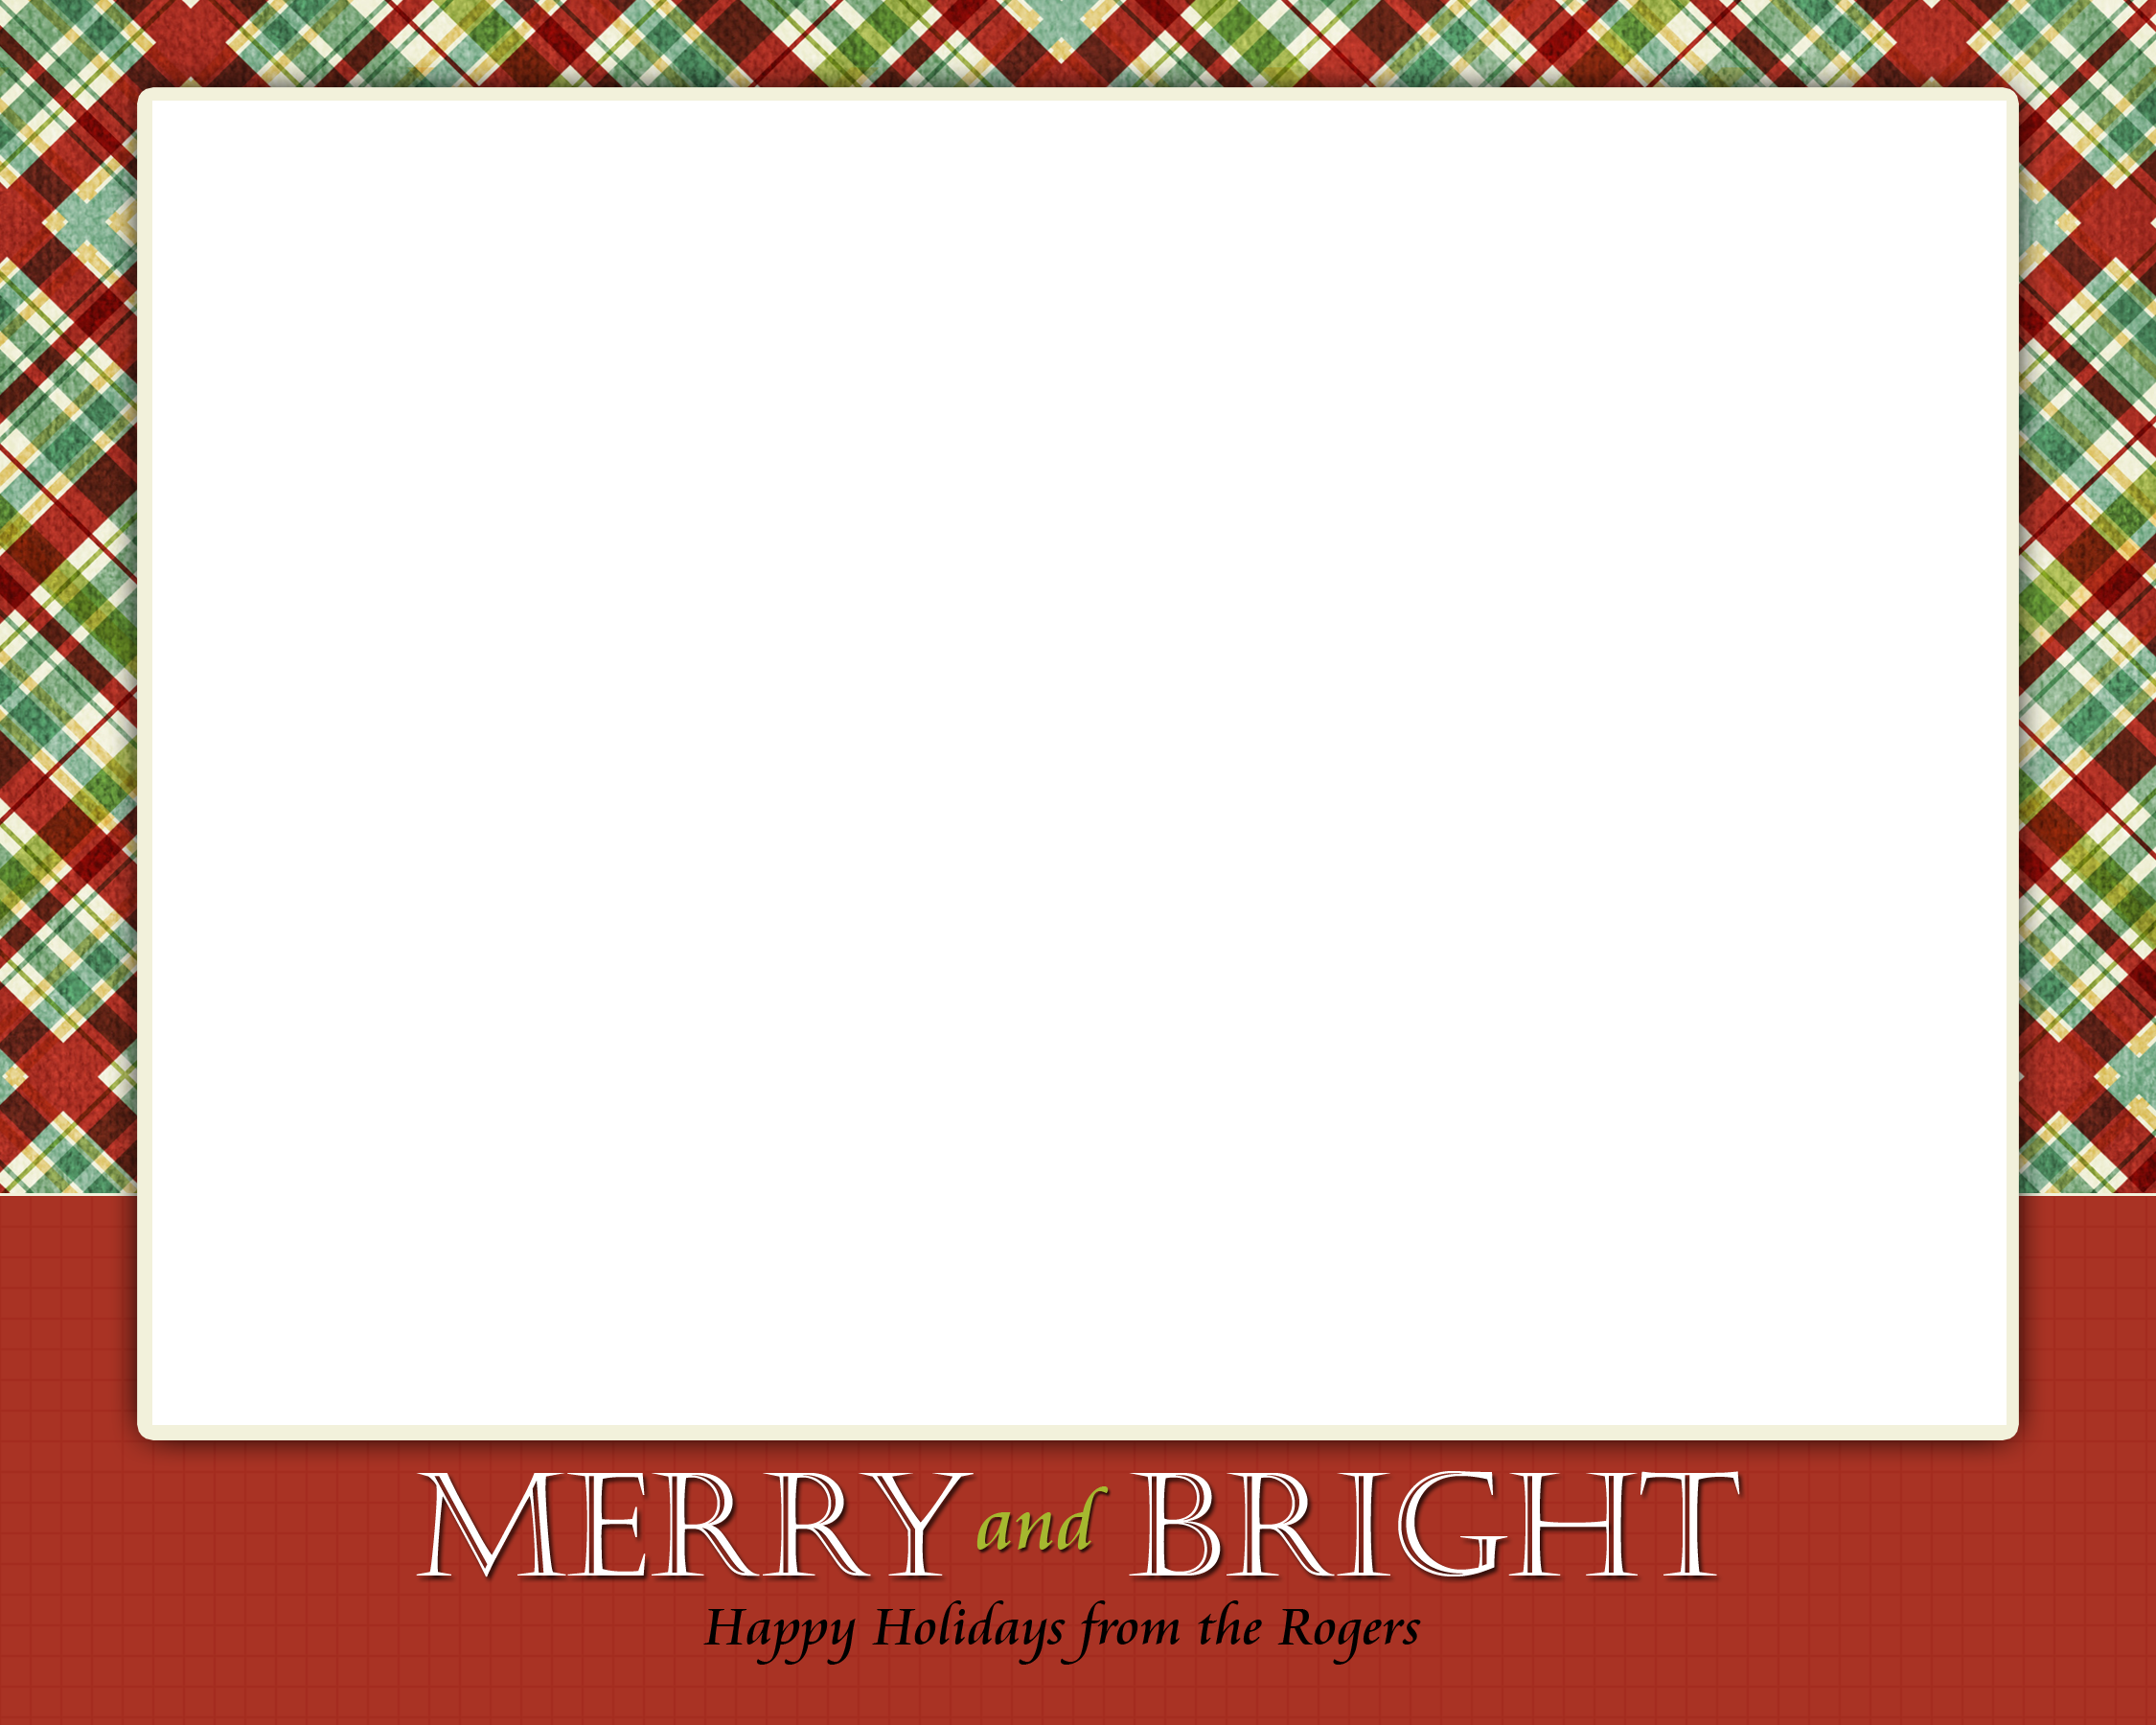 ChristmasCardTemplate simple Card Design – Holiday Card Template